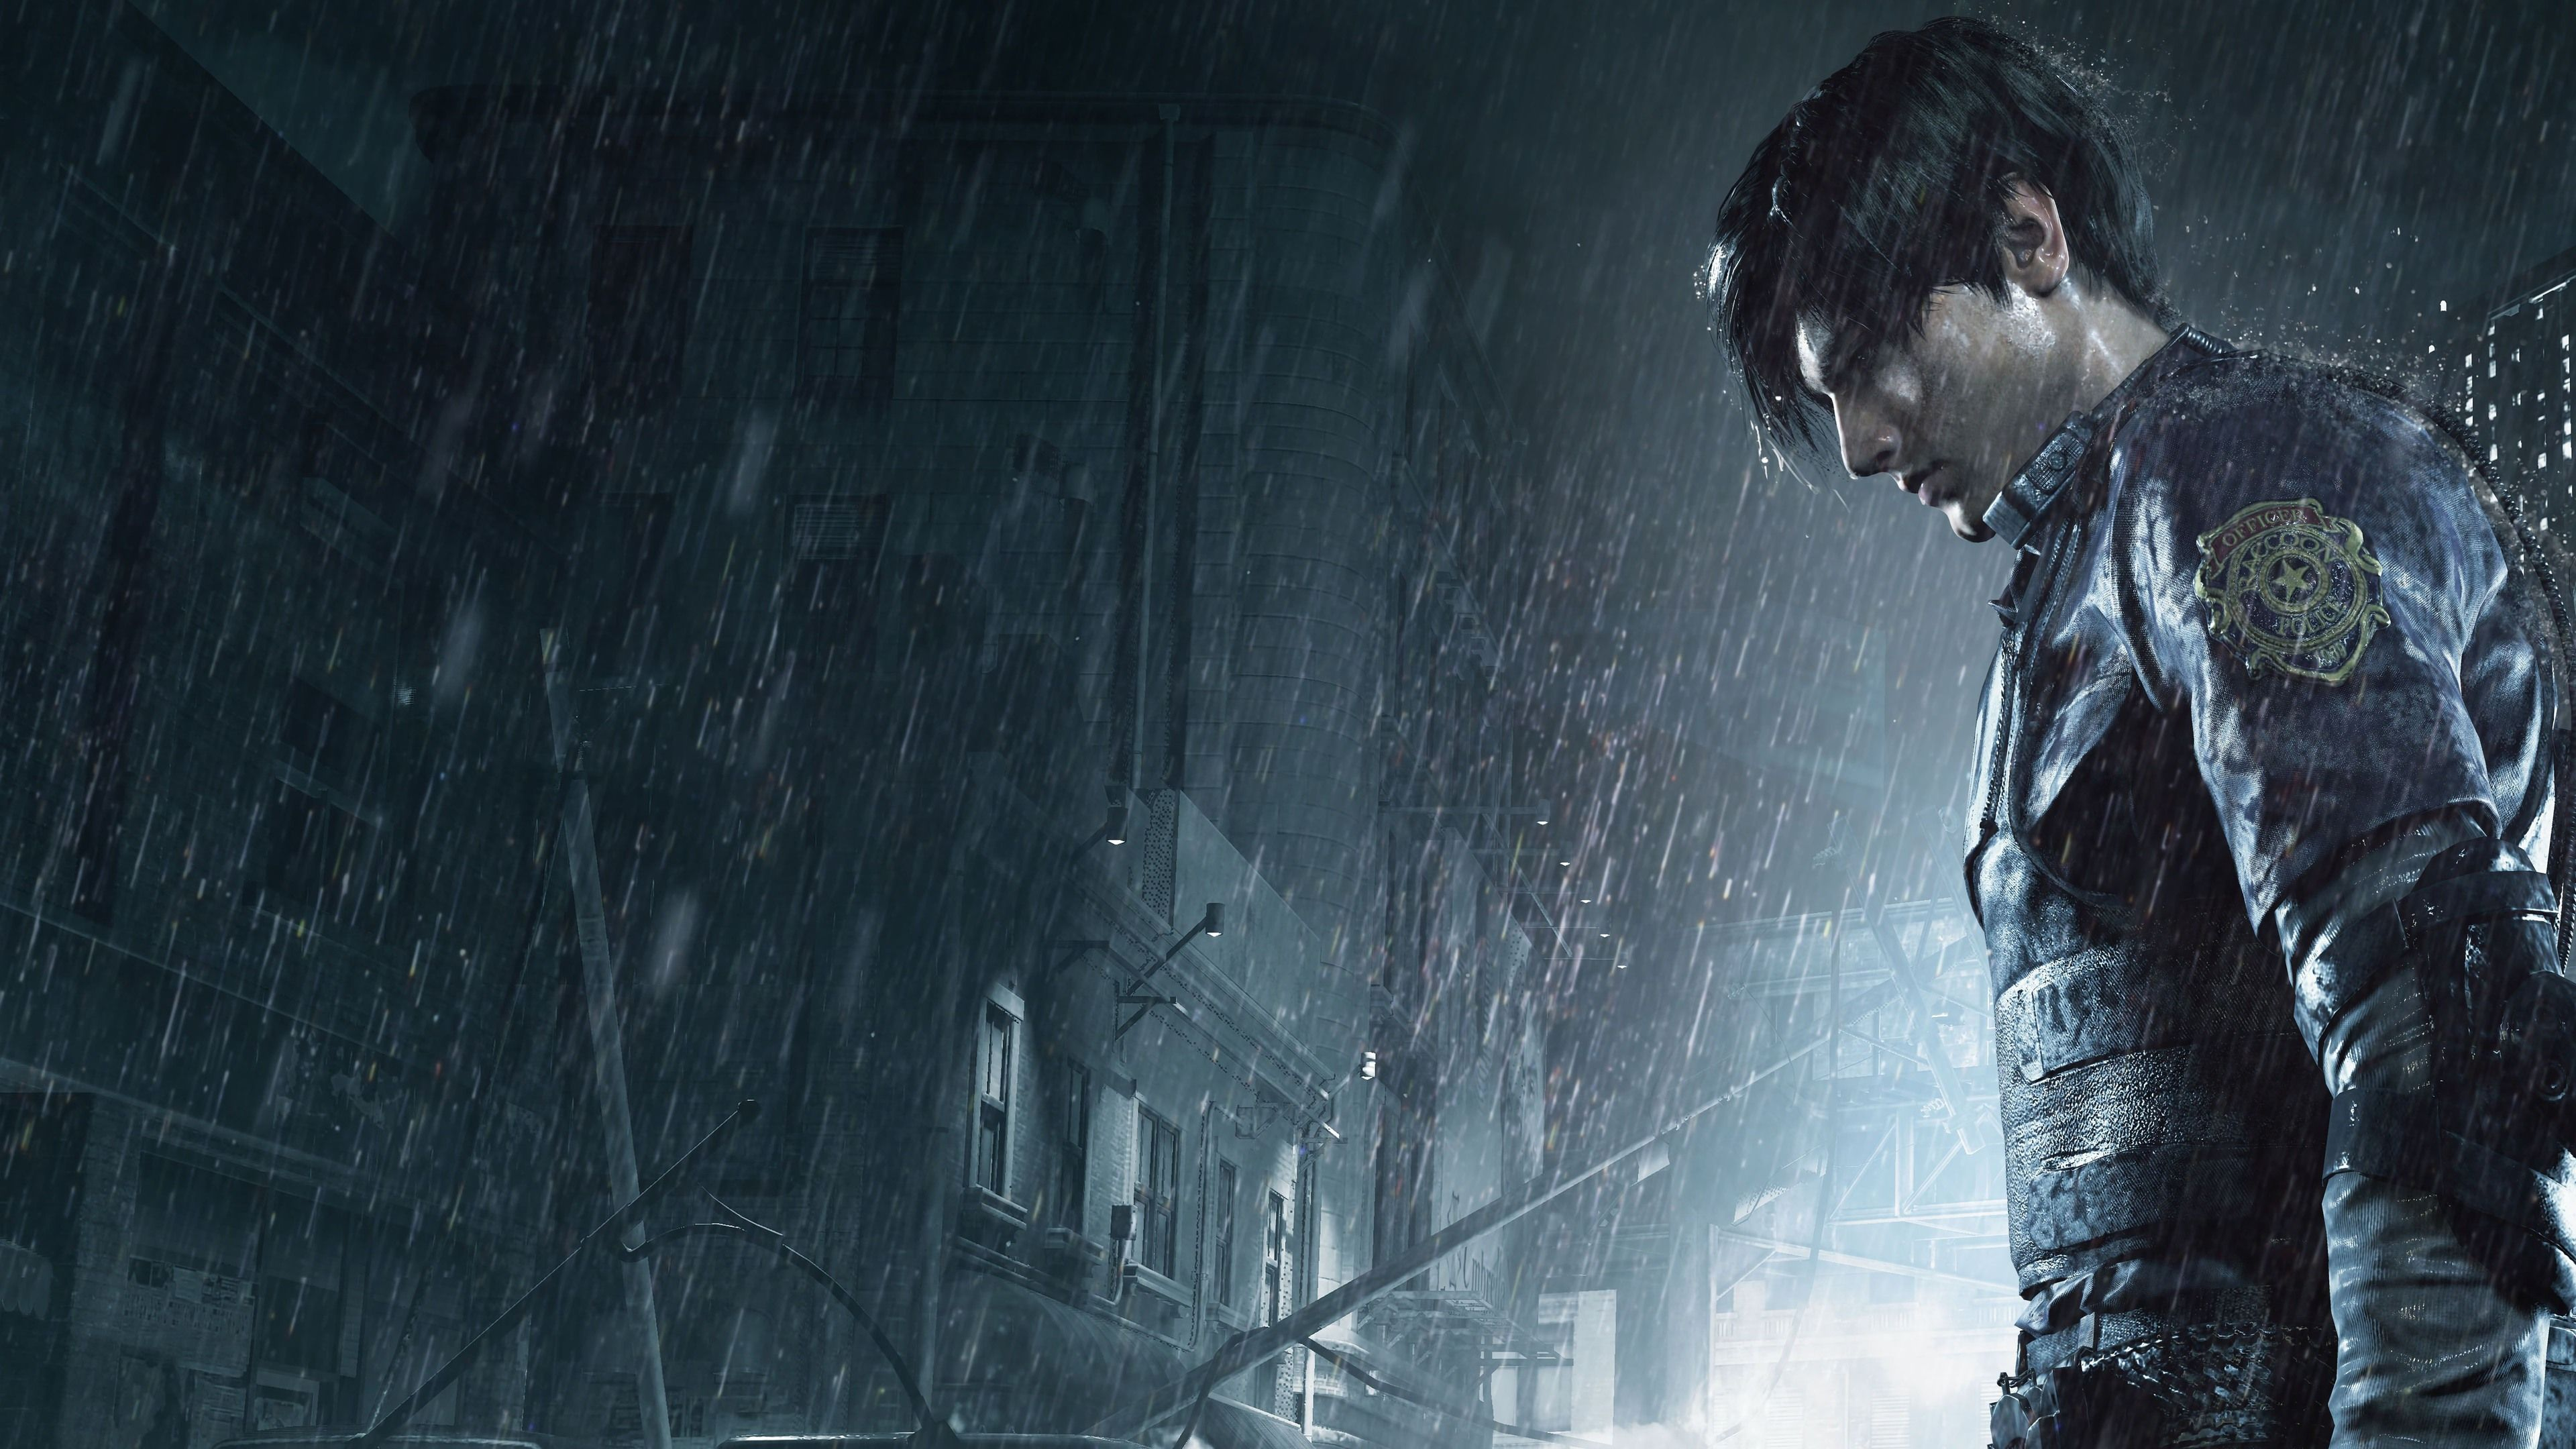 Leon Kennedy Resident Evil 2 Resident Evil 2 Wallpapers Leon Kennedy Wallpapers Hd Wallpapers Games Wallpapers 8k Resident Evil Leon S Kennedy Leon Kennedy